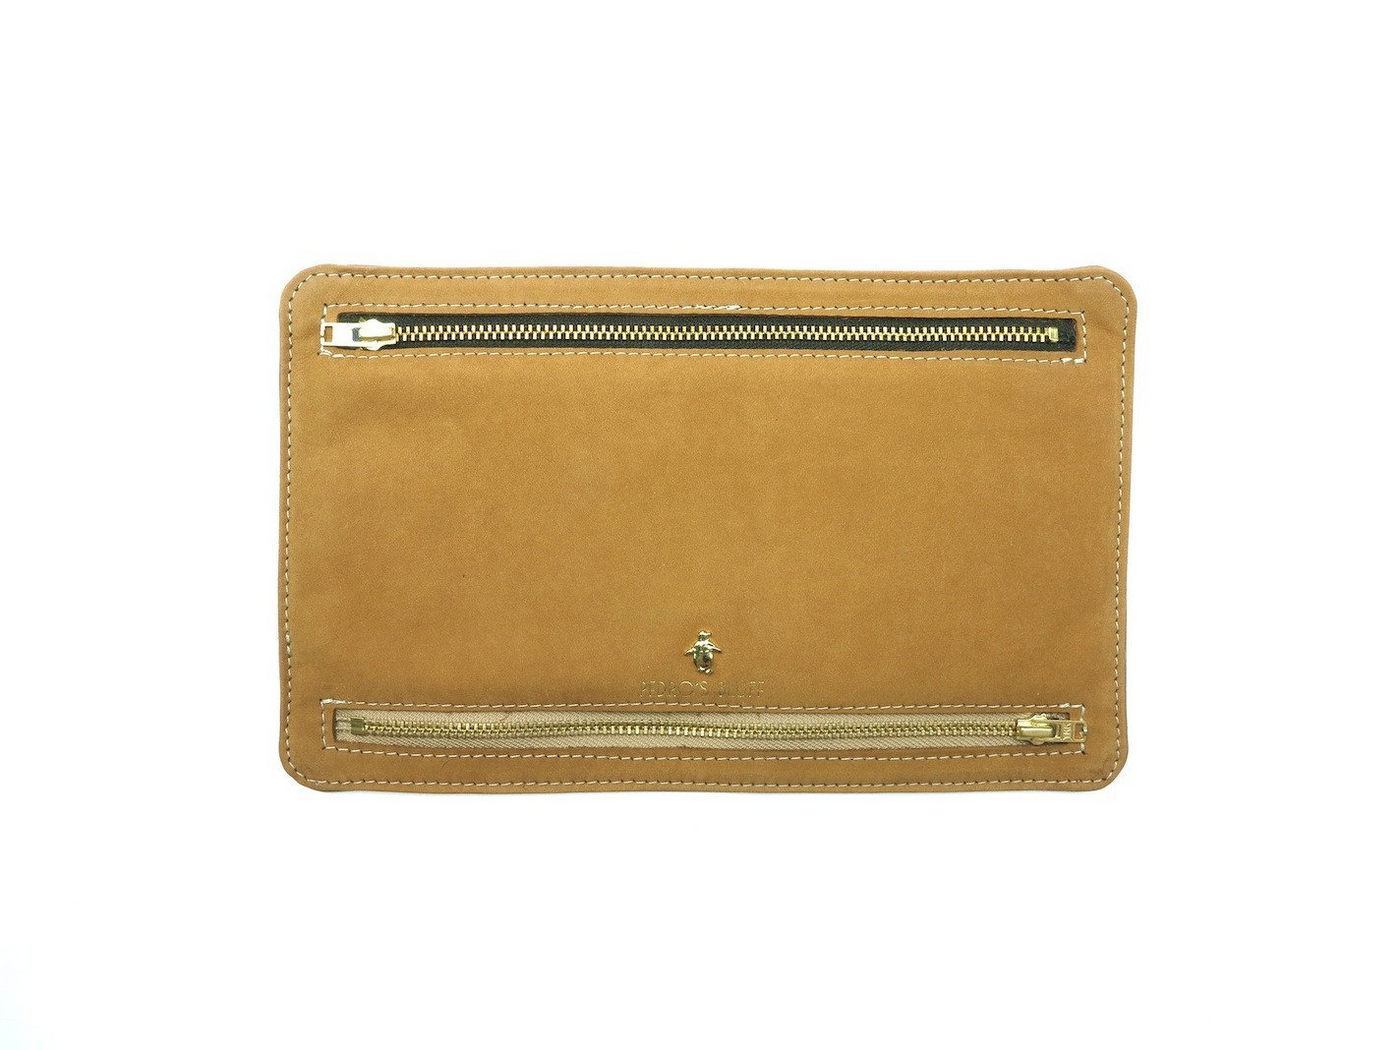 Globehopper Wallet - Shearling - PEDRO'S BLUFF - New Zealand Leather Bags & Accessories